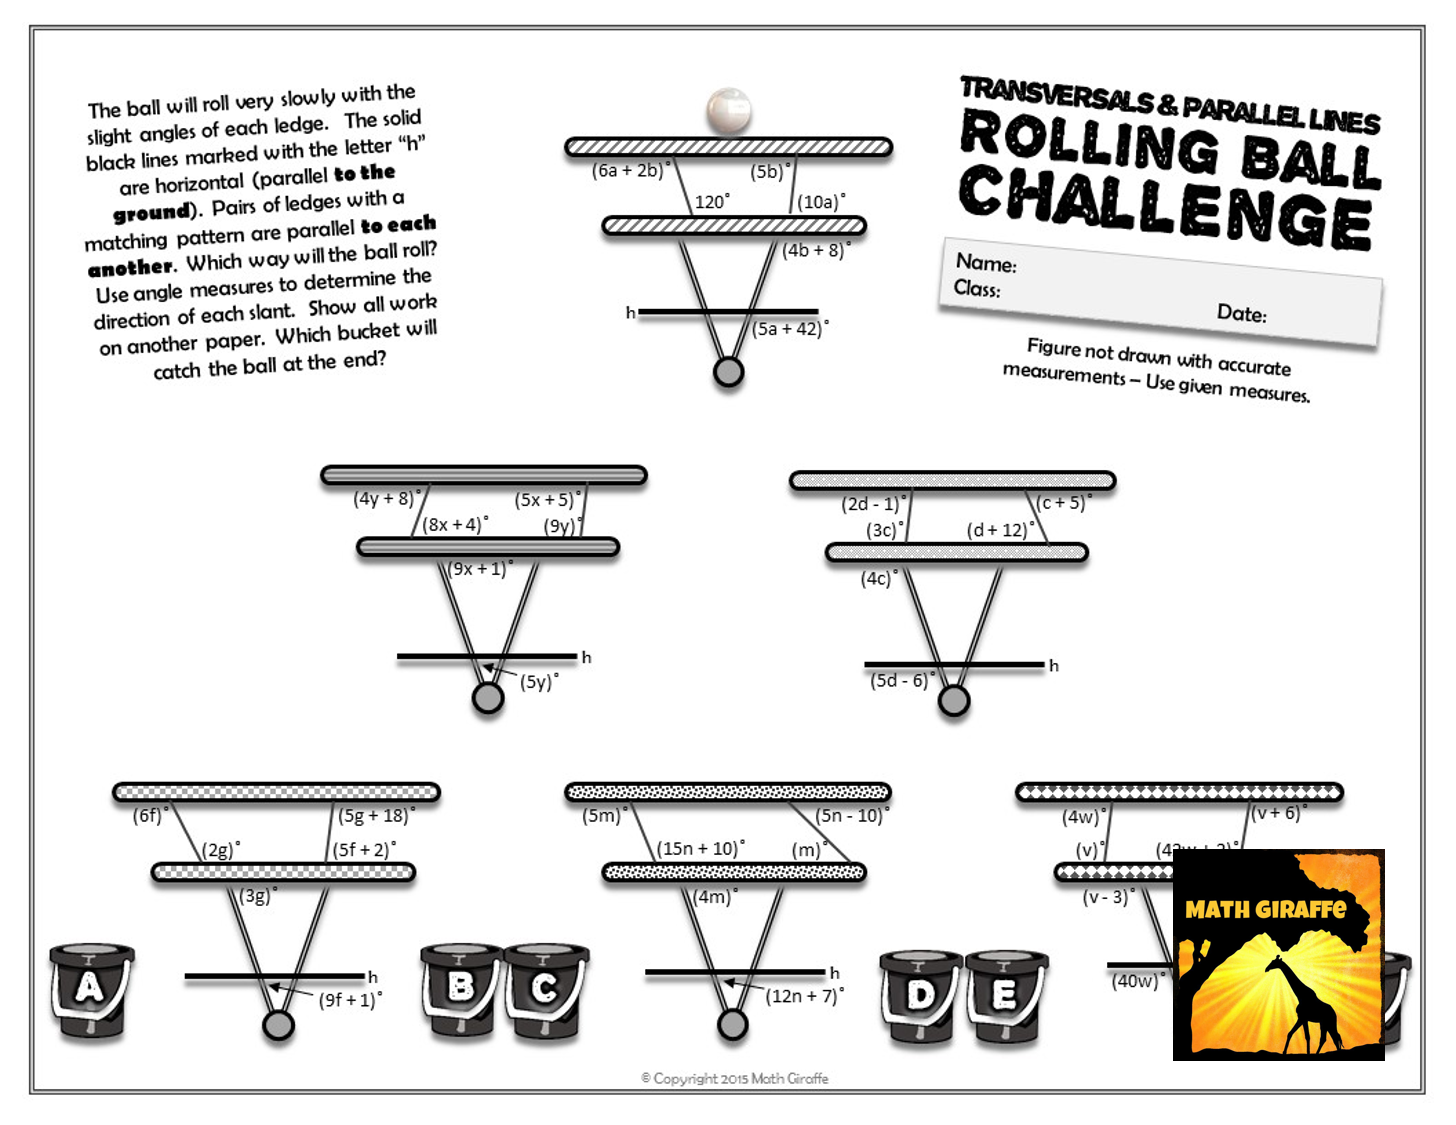 Transversals Amp Parallel Lines Rolling Ball Challenge